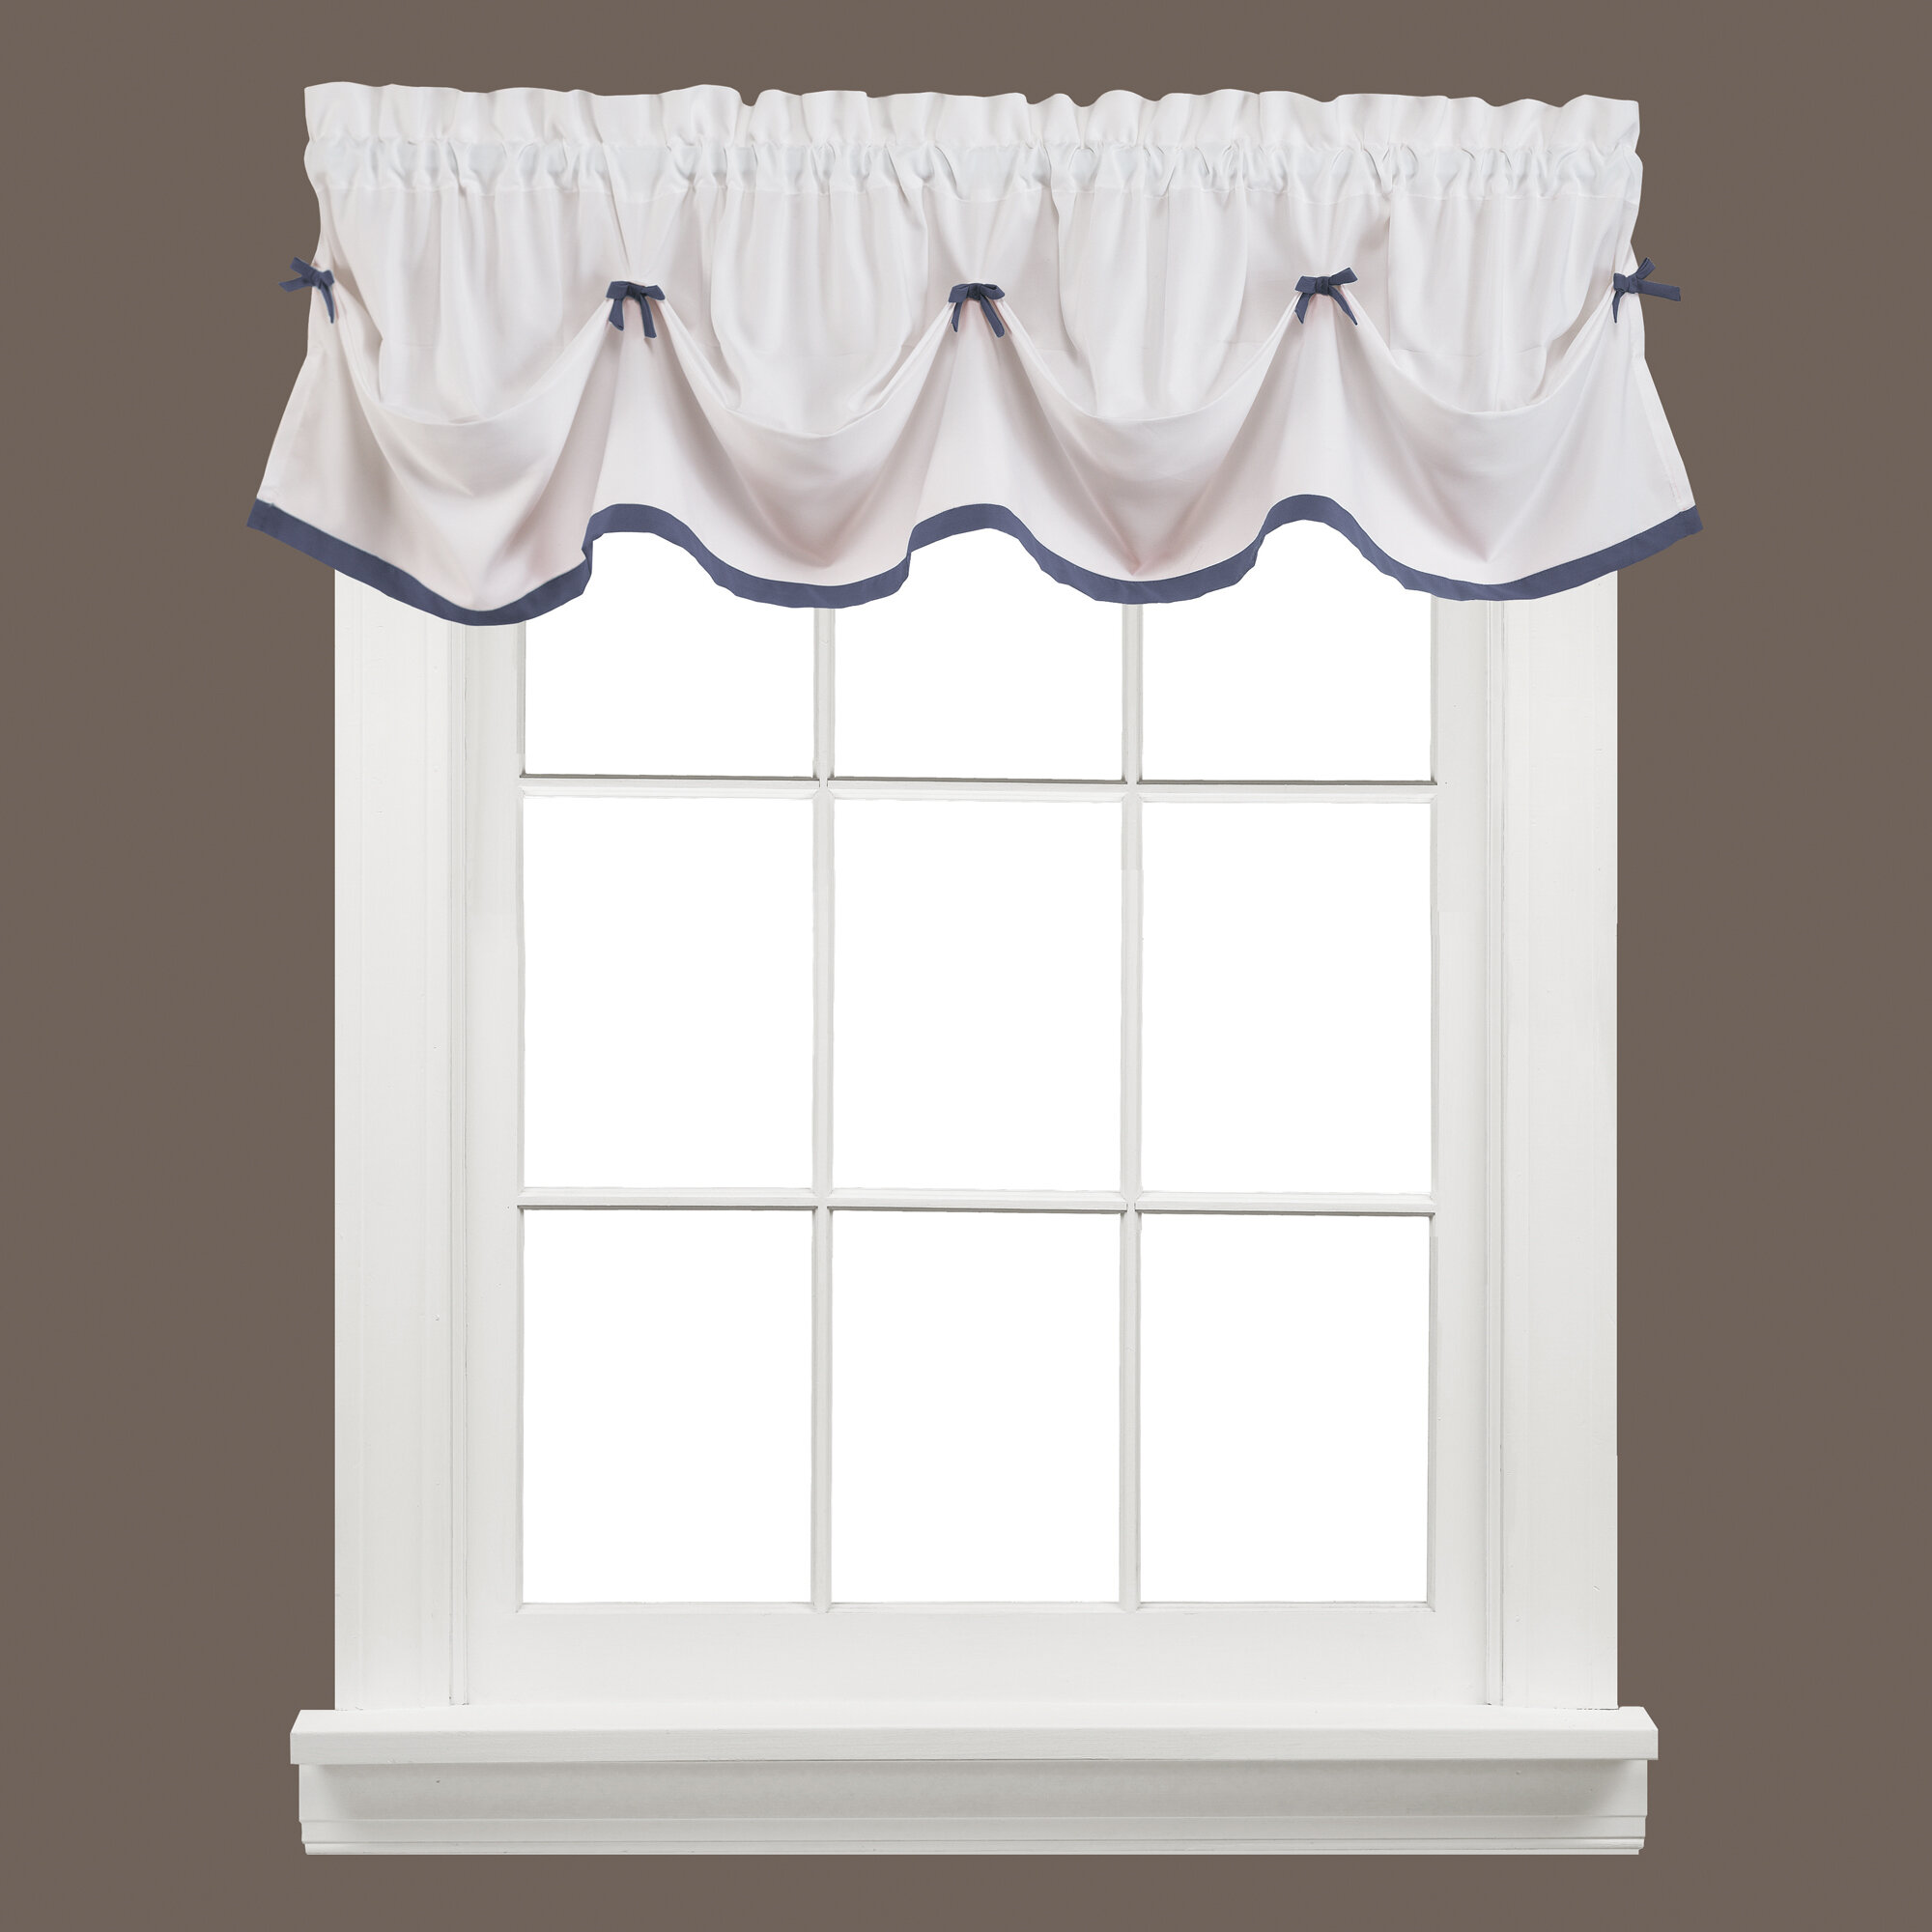 a dinner pin decorative as inexpensive holiday napkins valances edition valance winter cloth